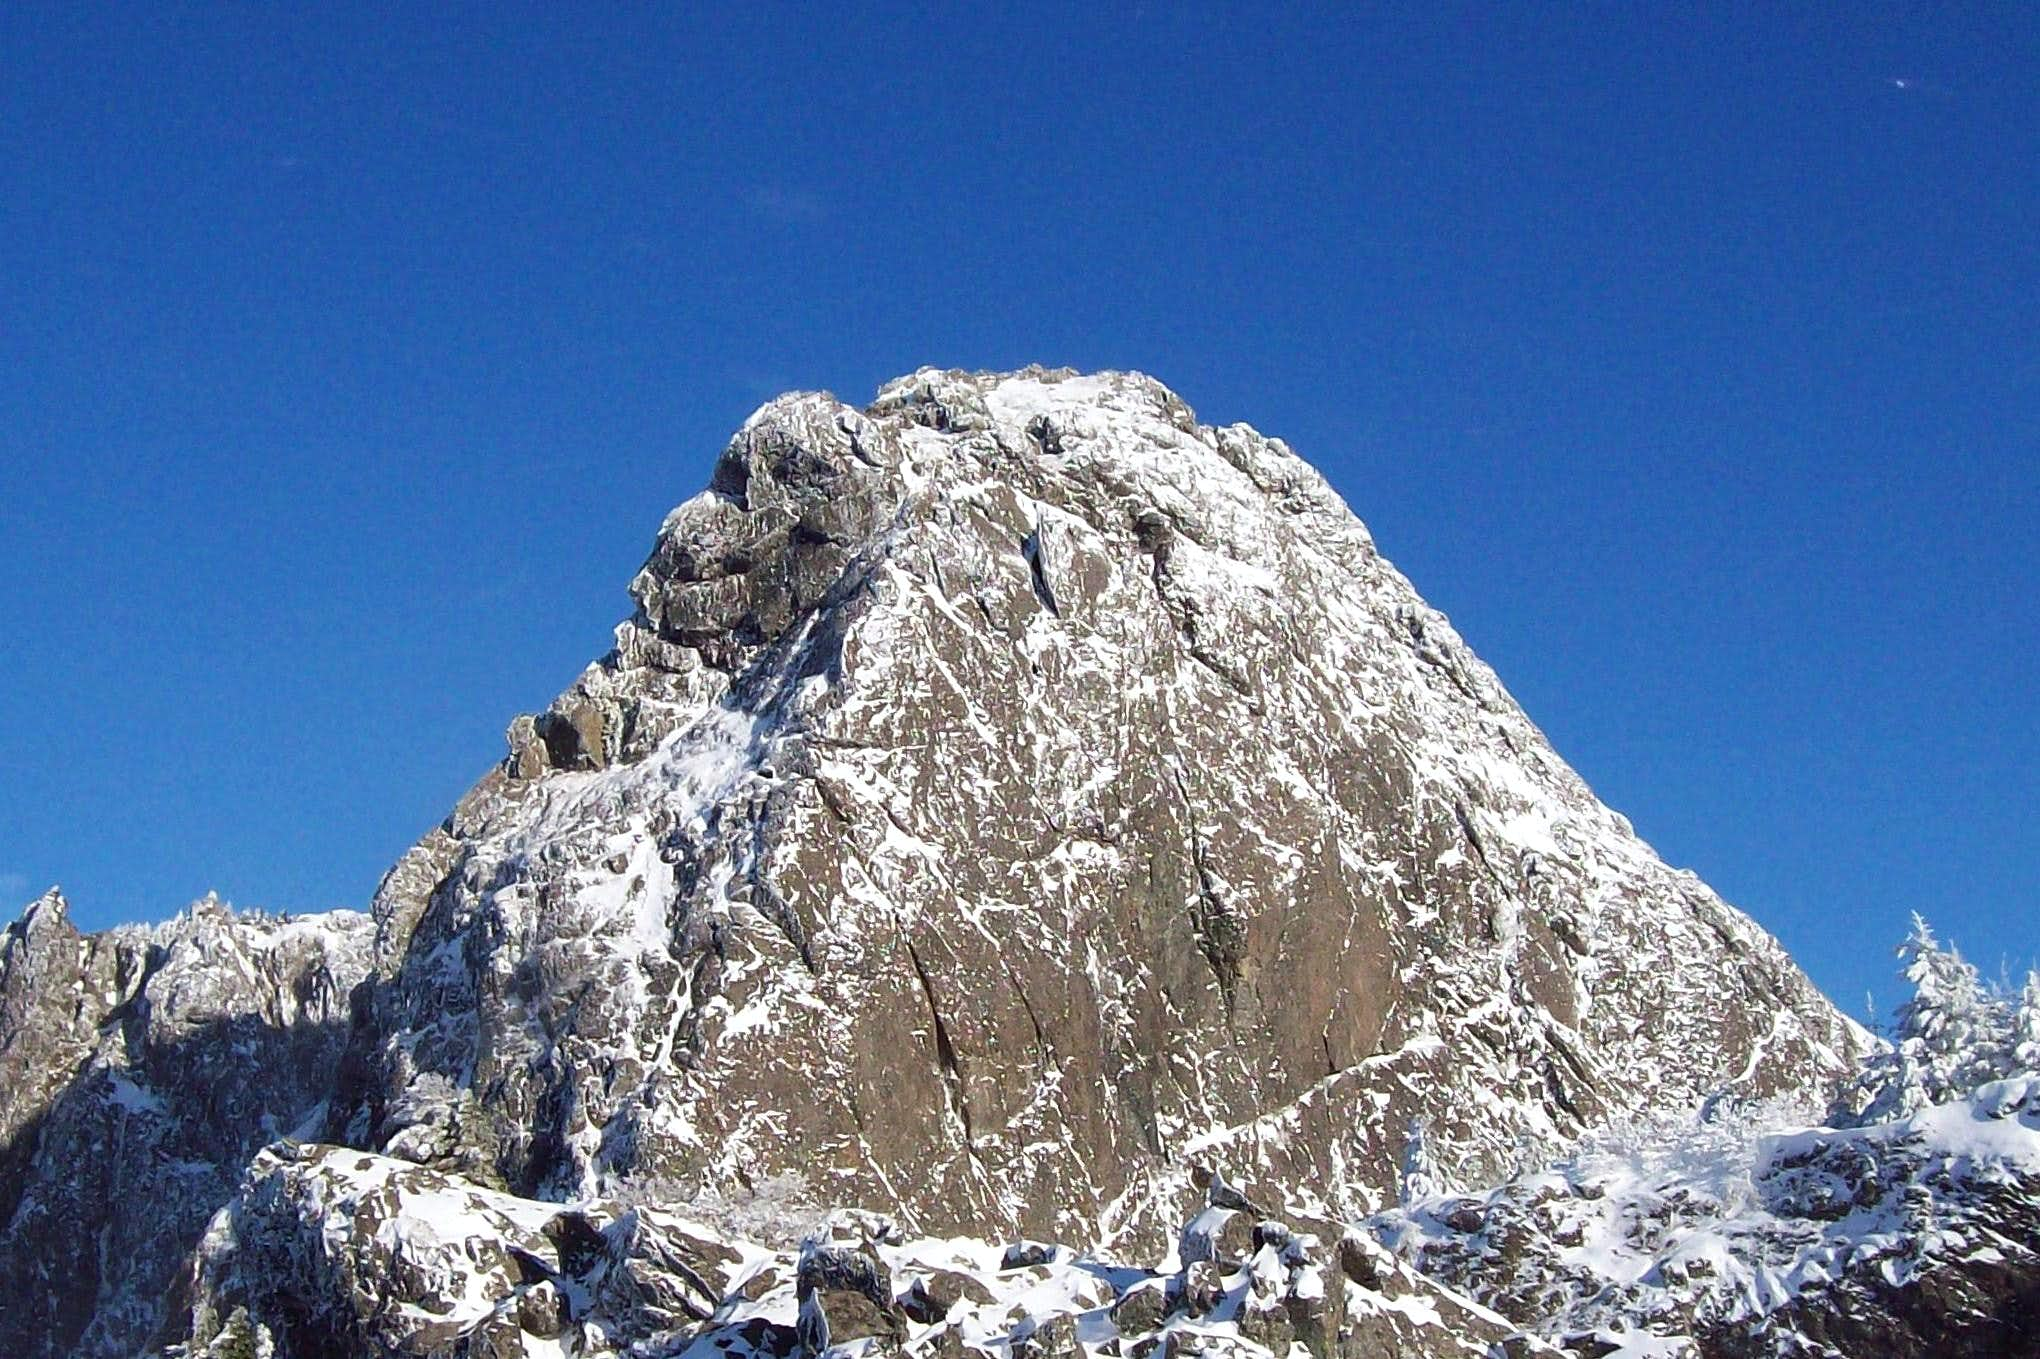 Winter freeze strikes Mount Si